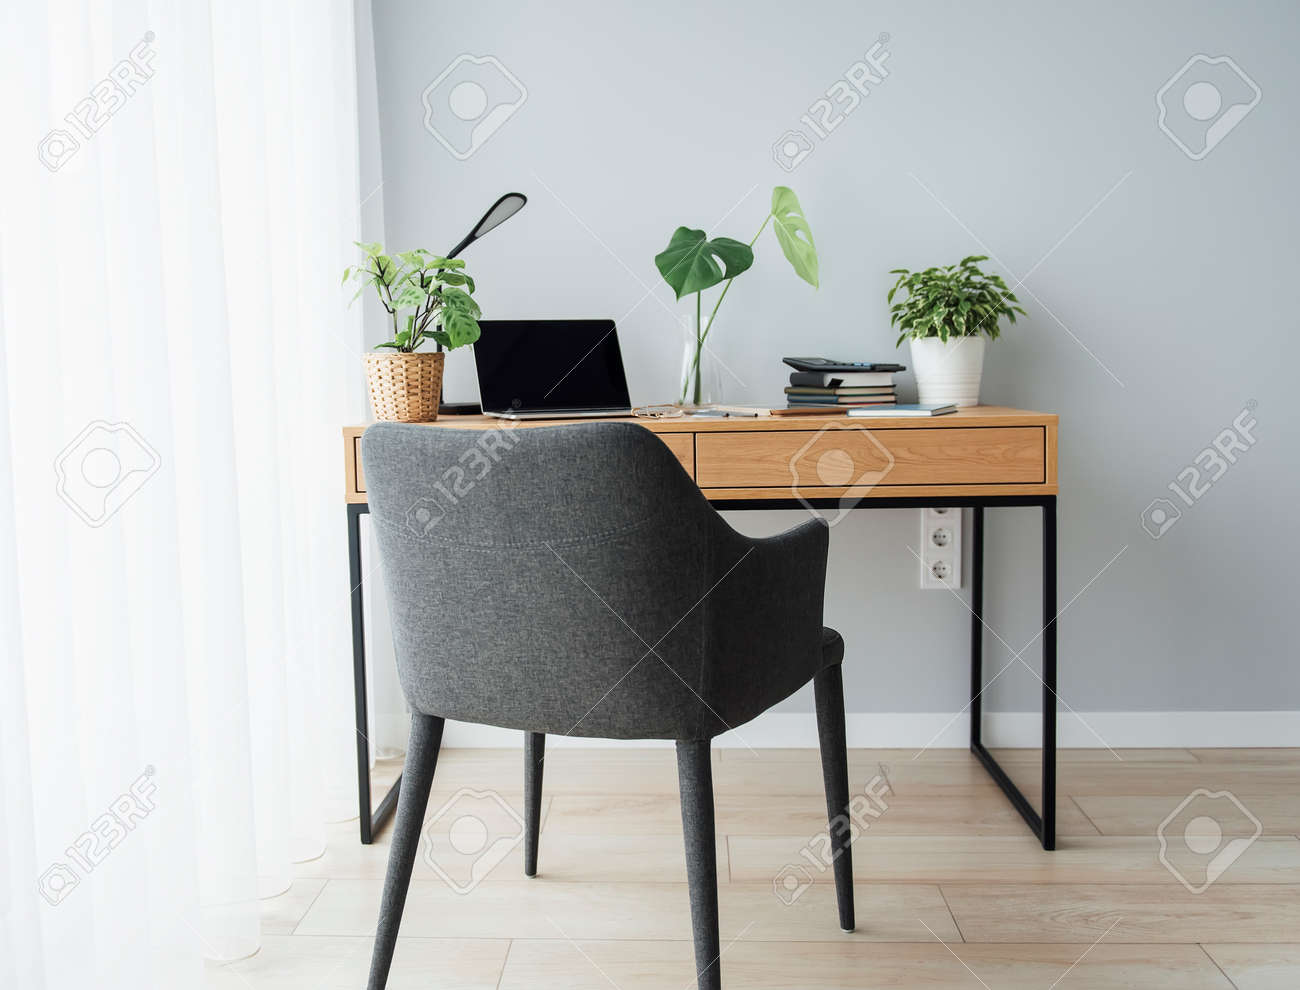 Office workplace with laptop on wooden table - 168964171